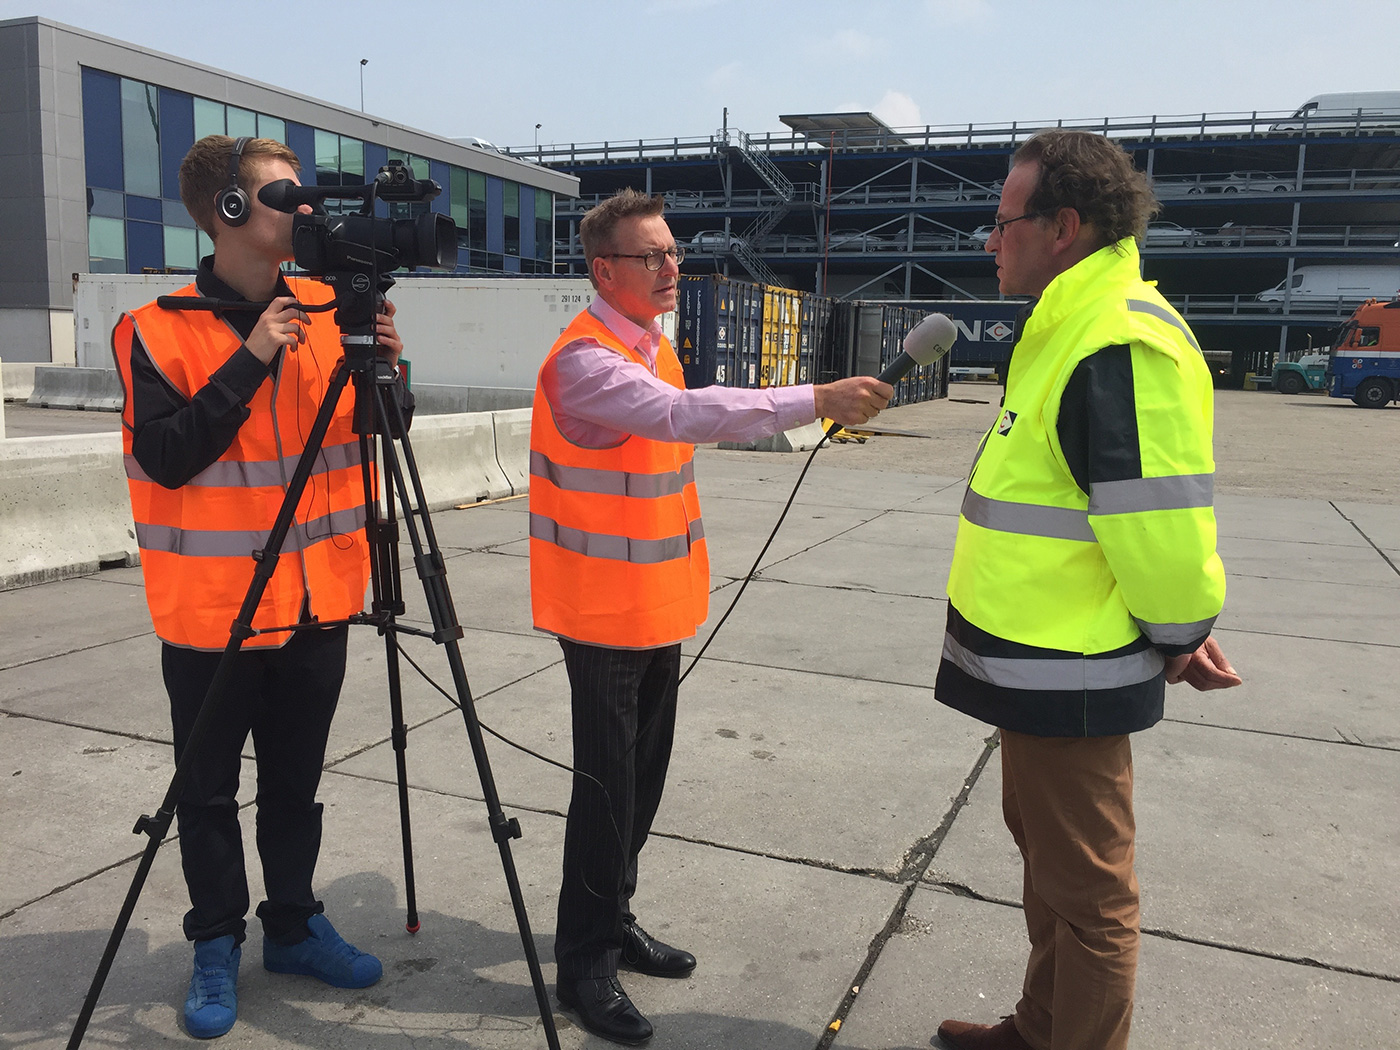 Crisis communication training. TV reporter questions spokesman on location at the Port of Rotterdam.